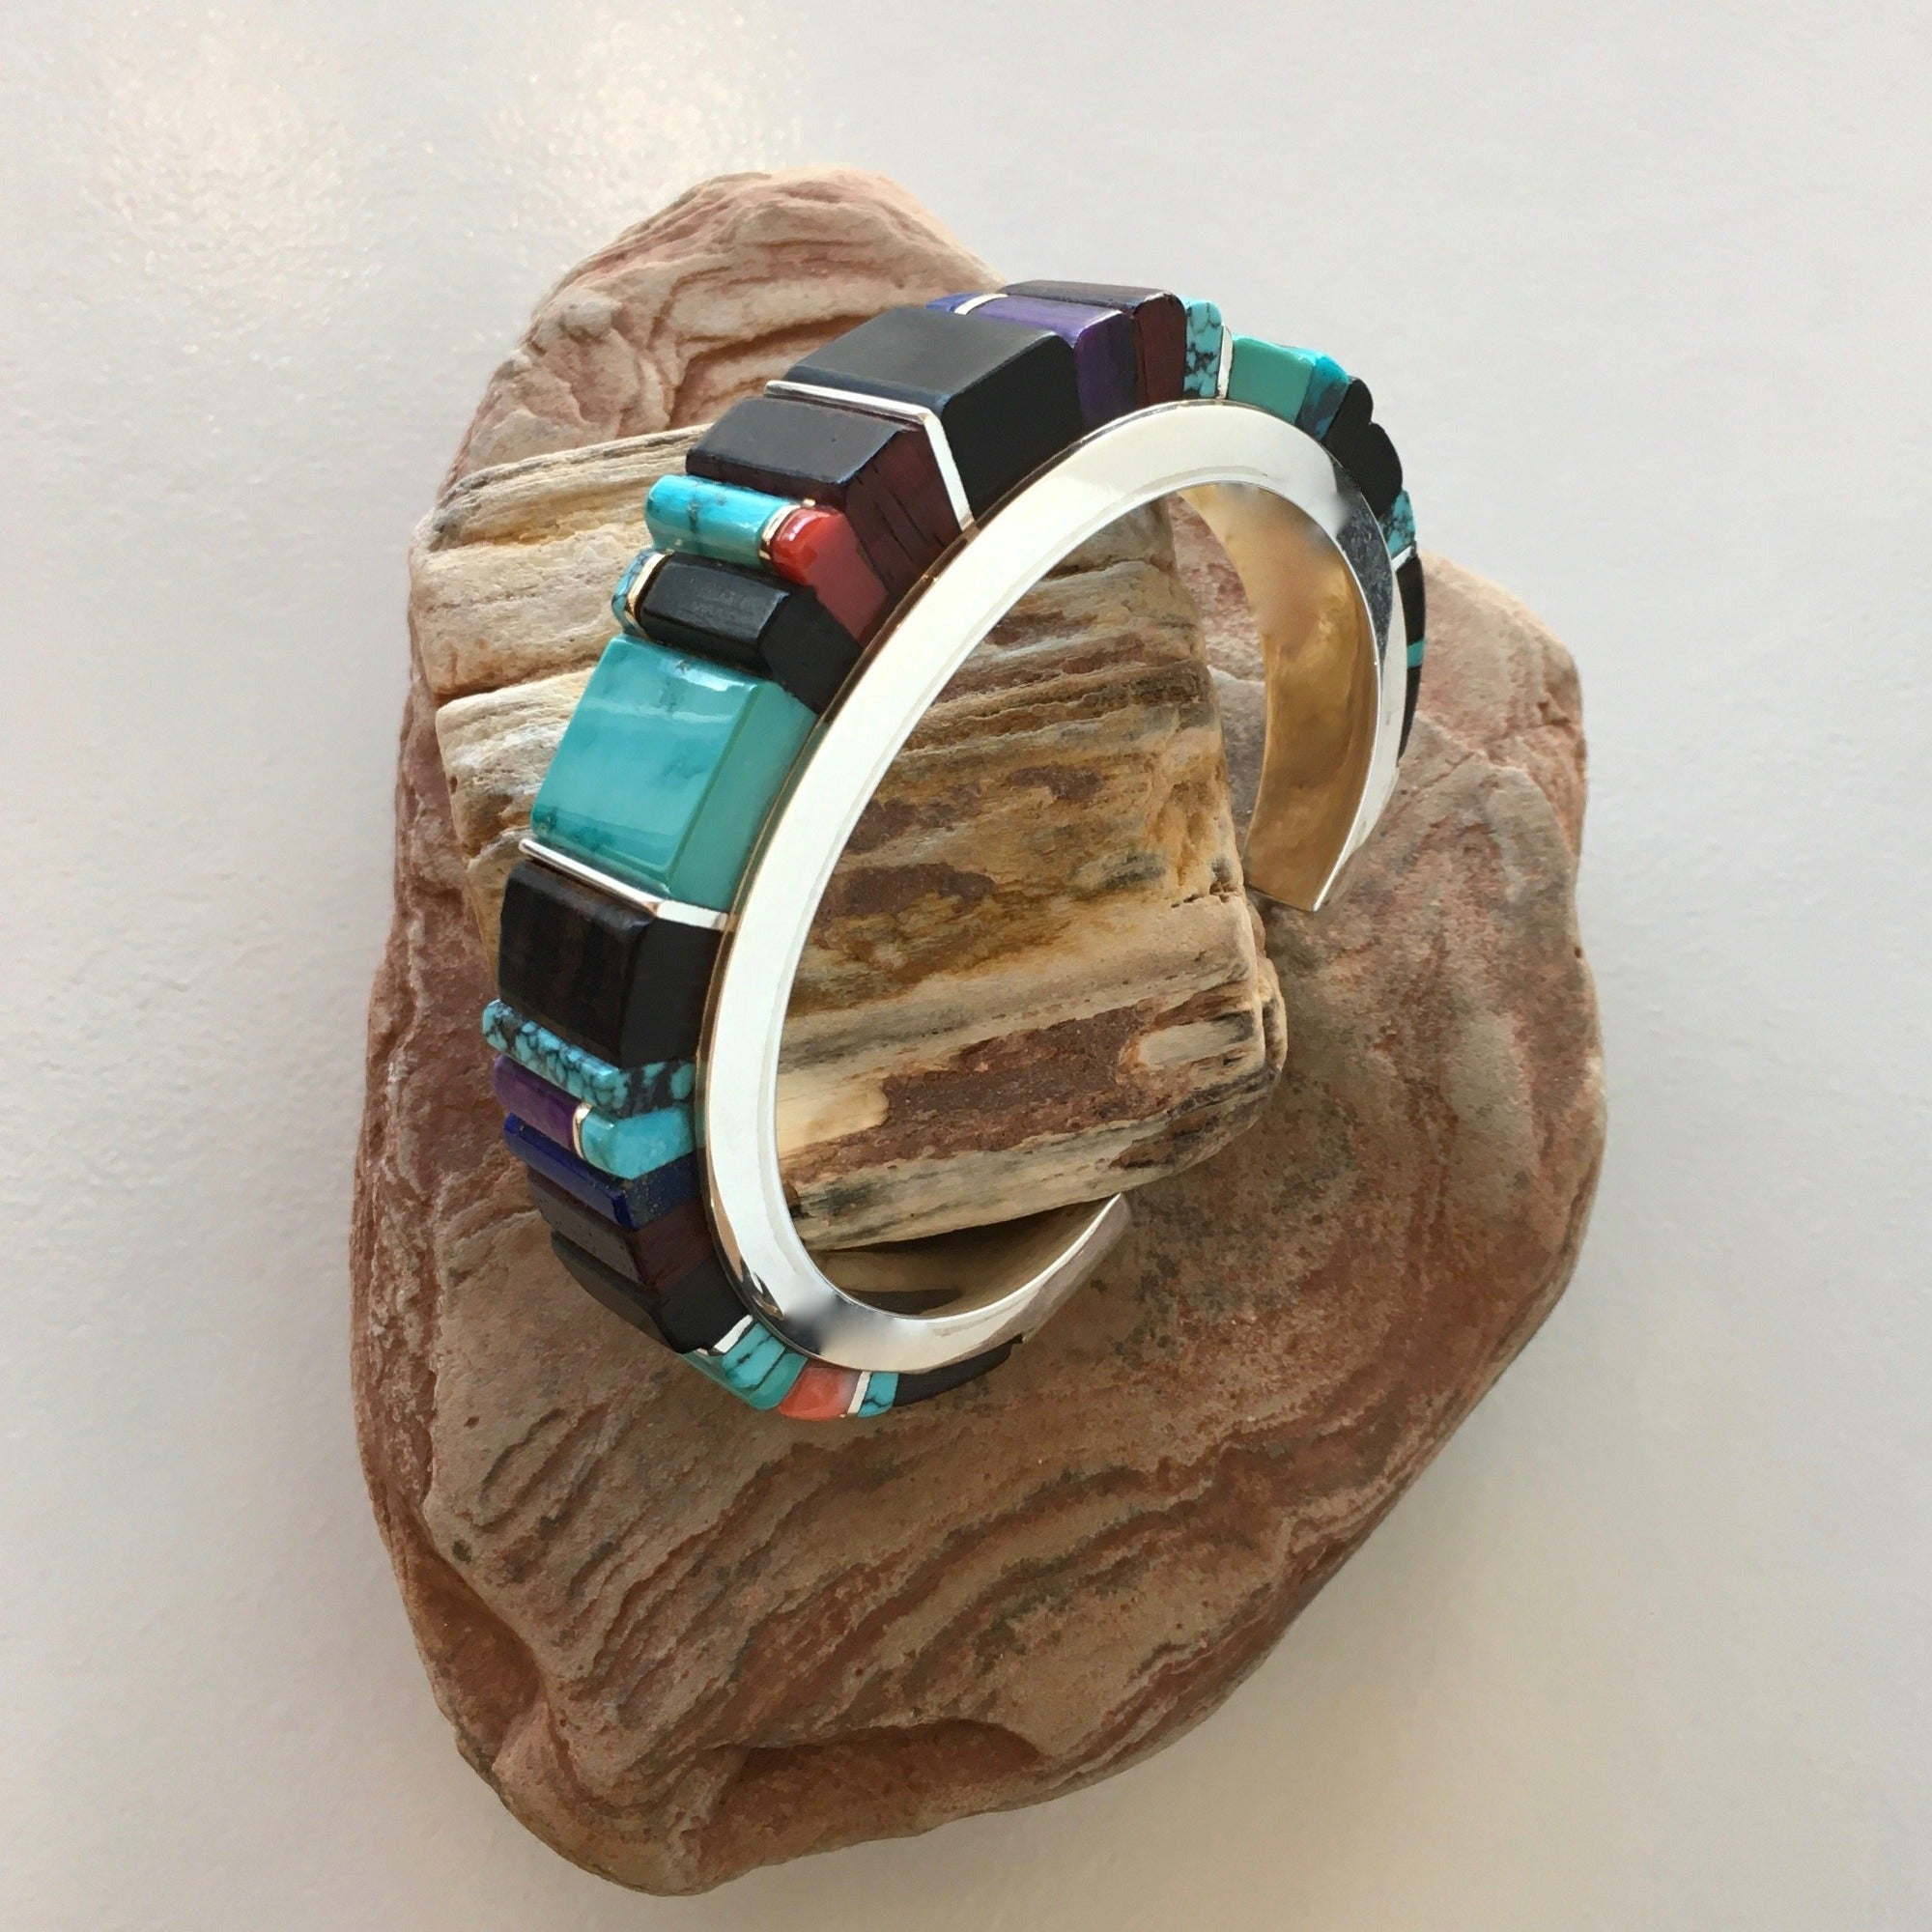 Silver Channel and Precious Stones Inlay Bracelet by Sonwai at Raven Makes Gallery Sisters Oregon, Sowai Bracelet